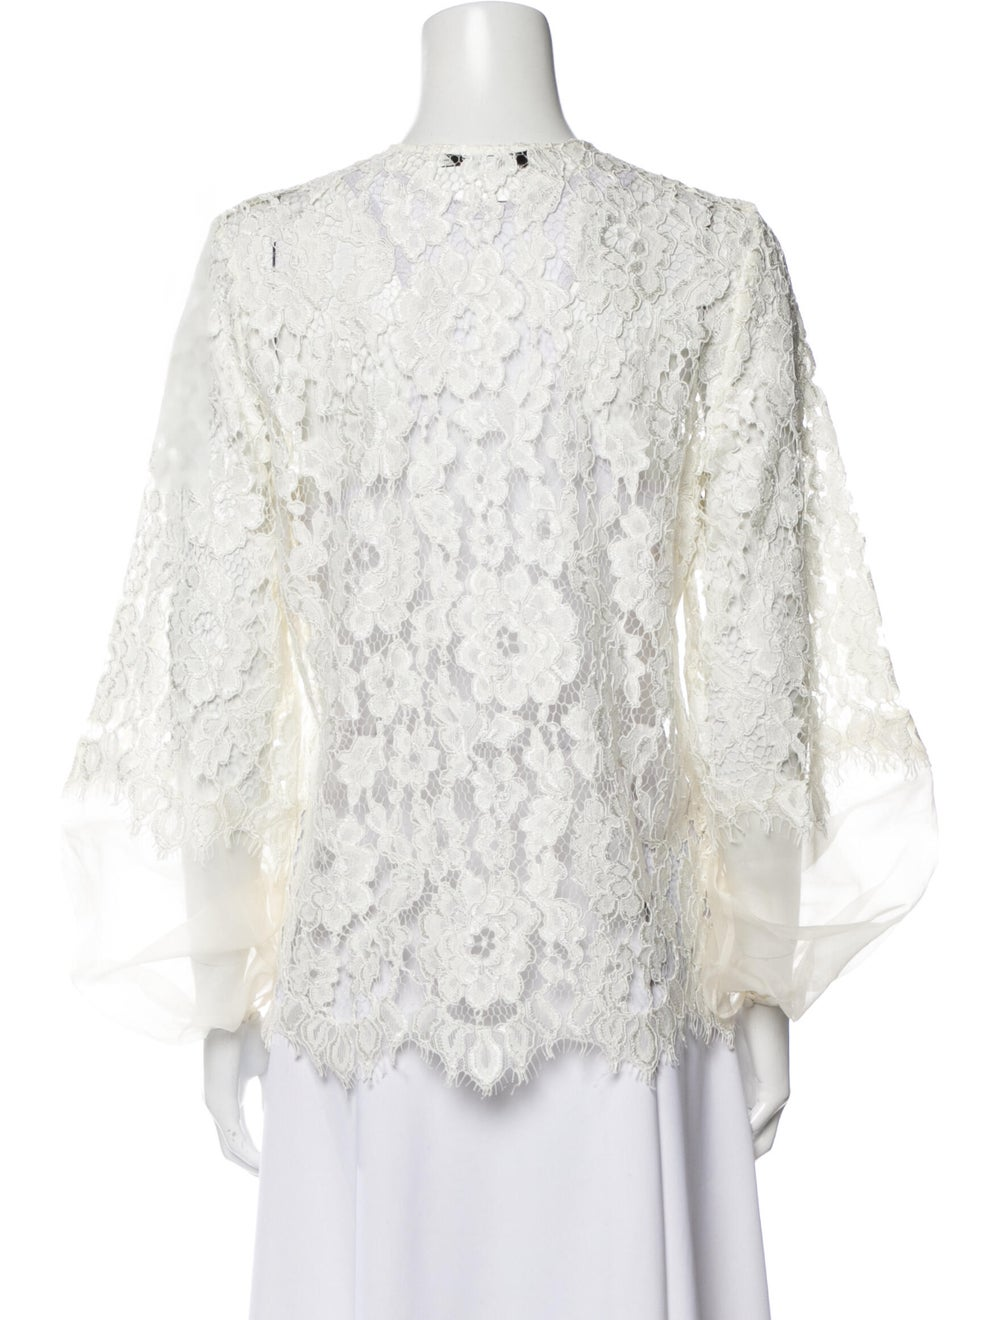 Alexis Lace Pattern Crew Neck Blouse White - image 3